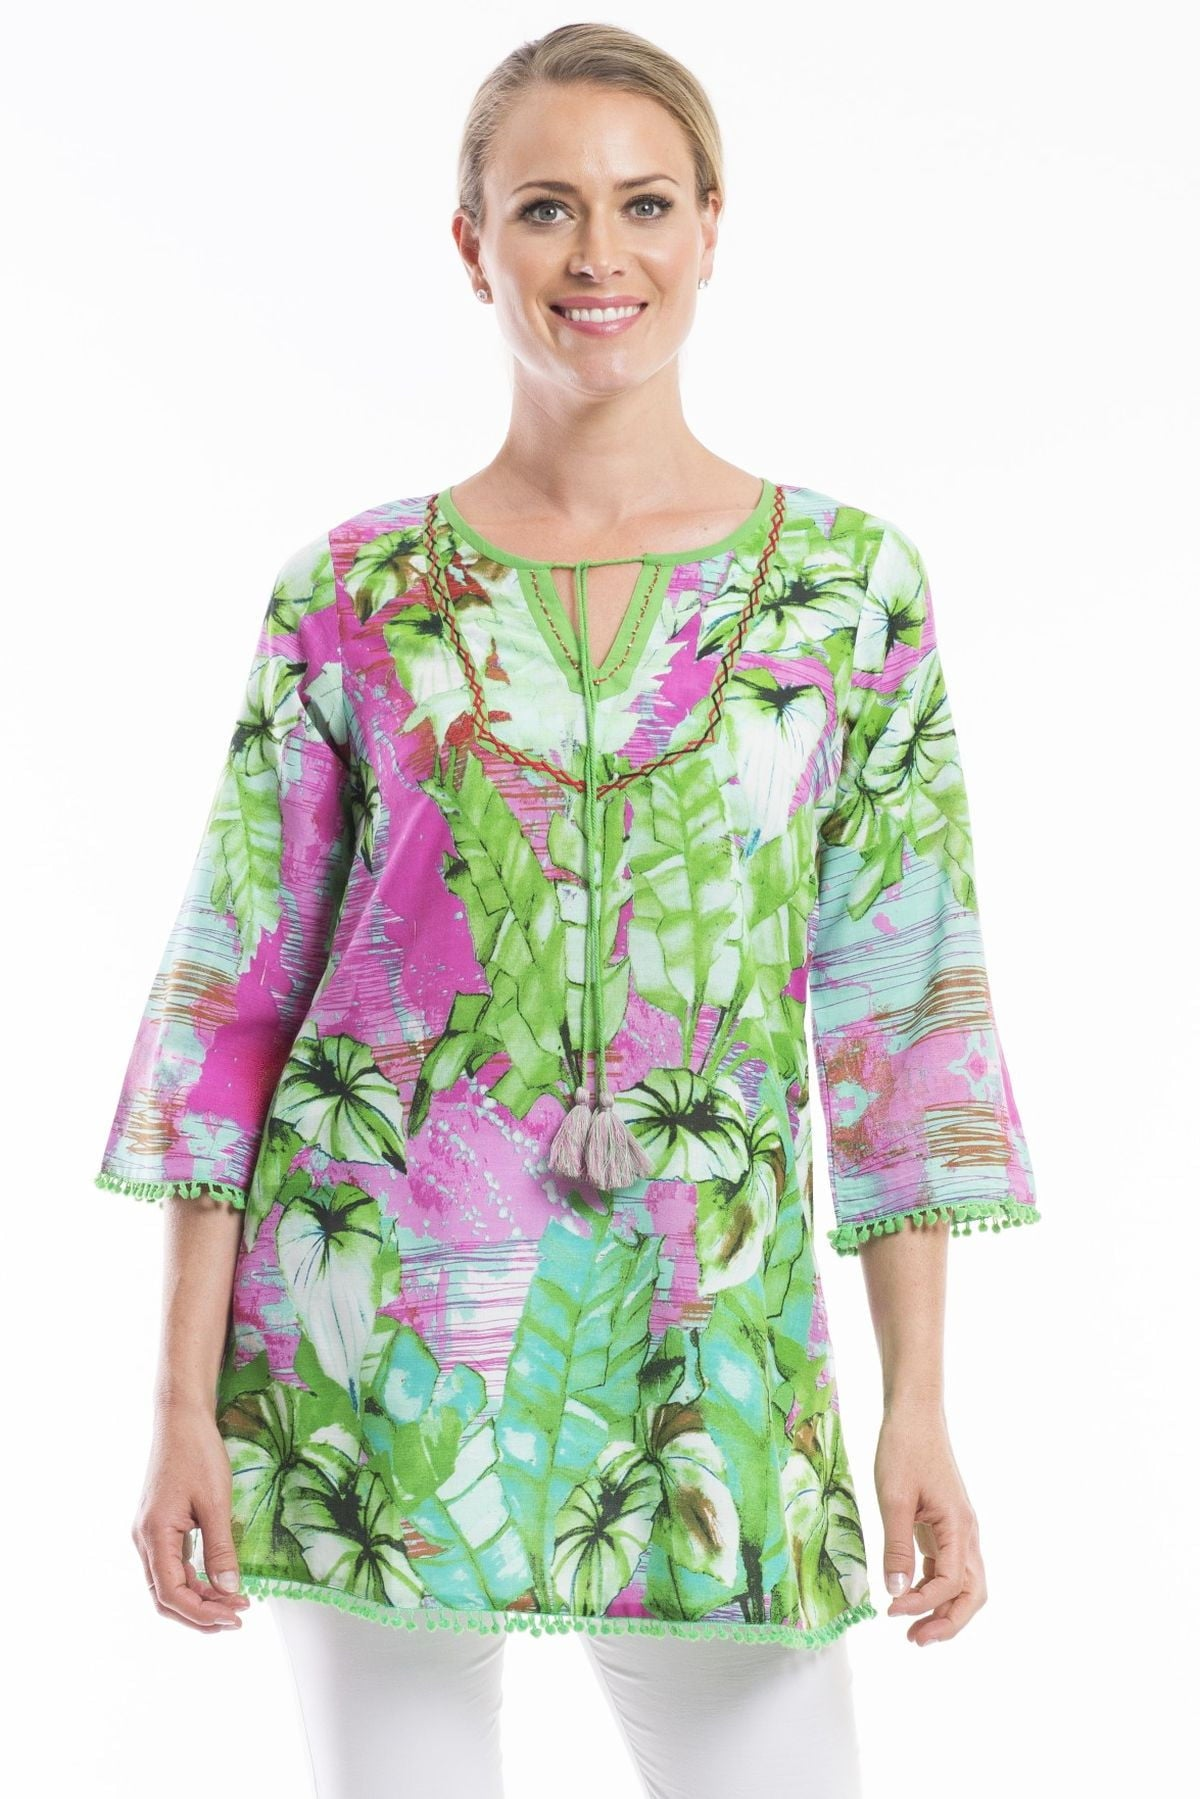 Lecce Green Pink Floral Orientique Tunic Top | I Love Tunics | Tunic Tops | Tunic | Tunic Dresses  | womens clothing online